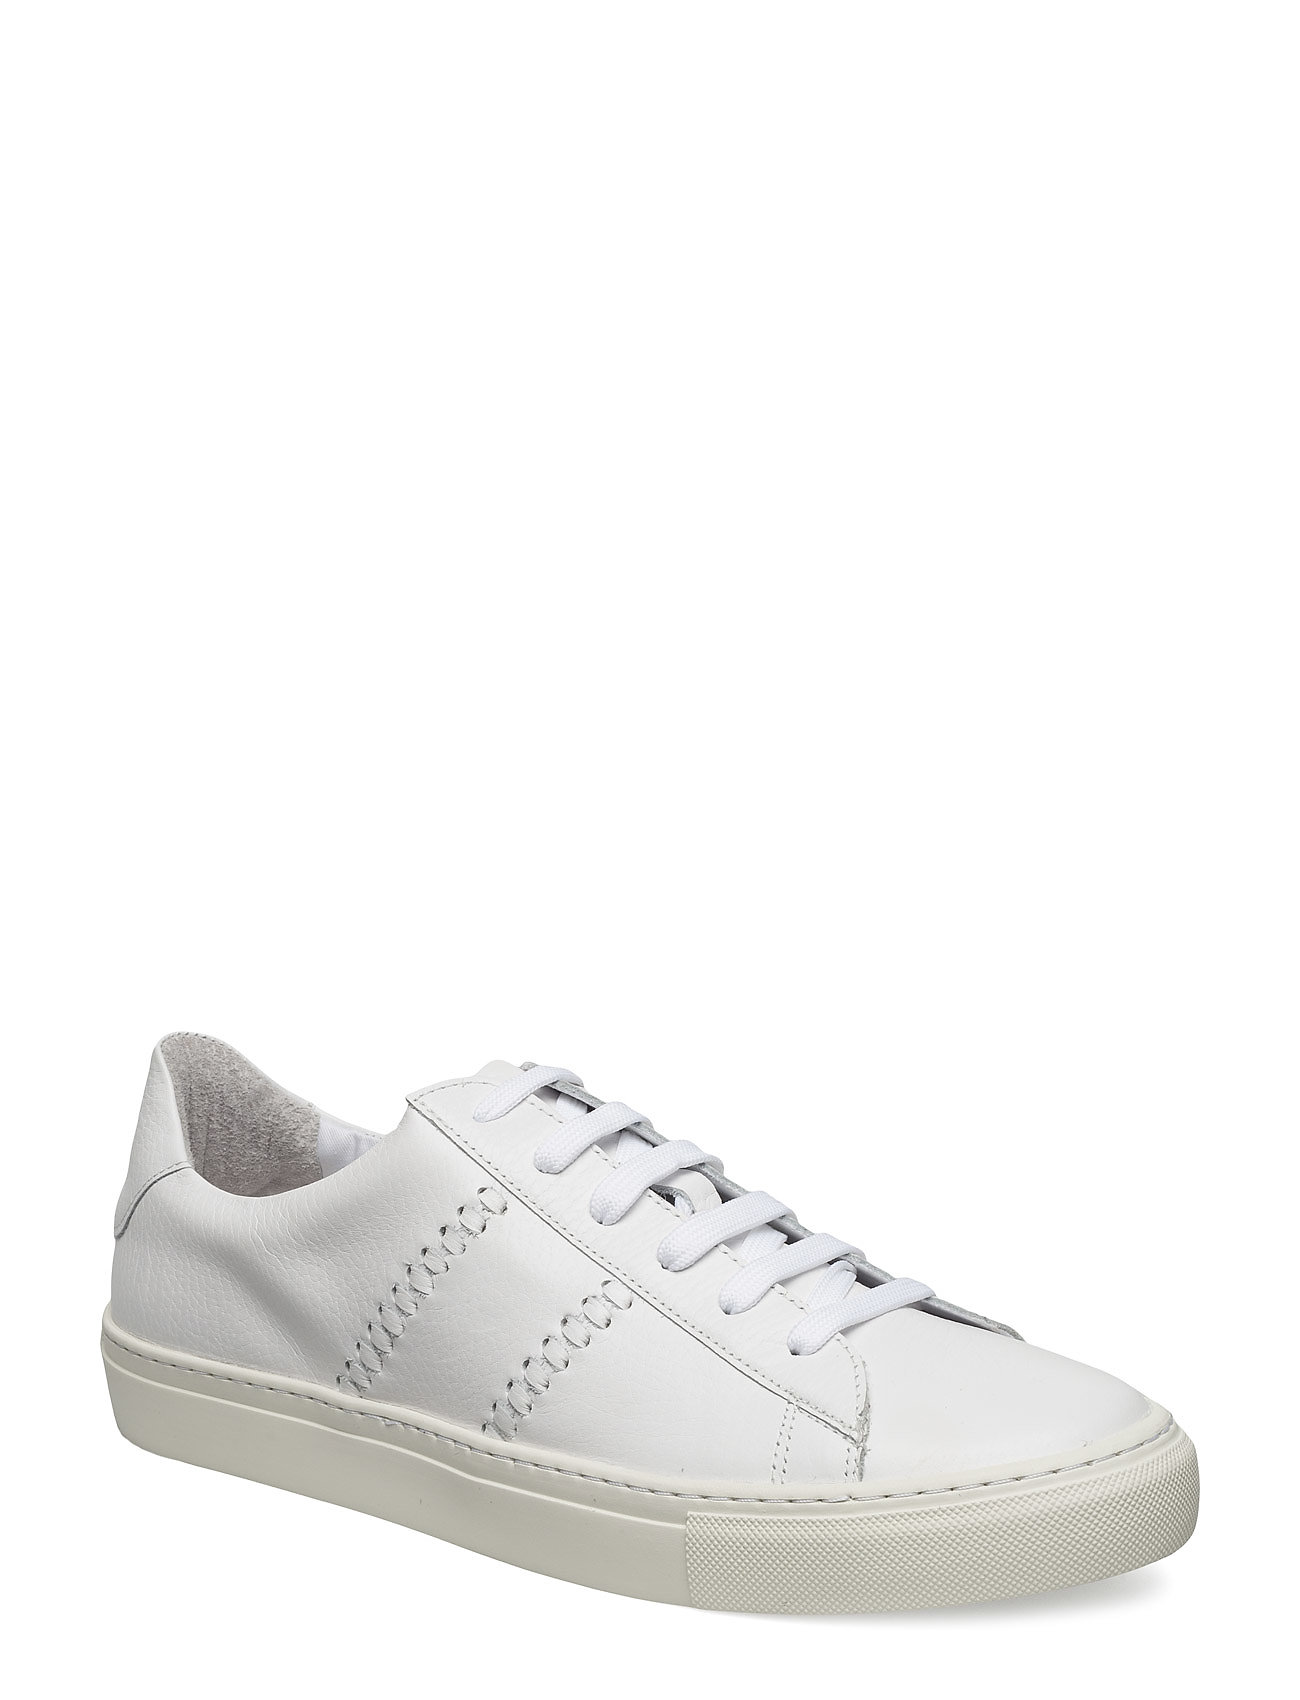 Maintenant 15% De Réduction: Bianco Chaussures En Daim Flatform nR2Zk